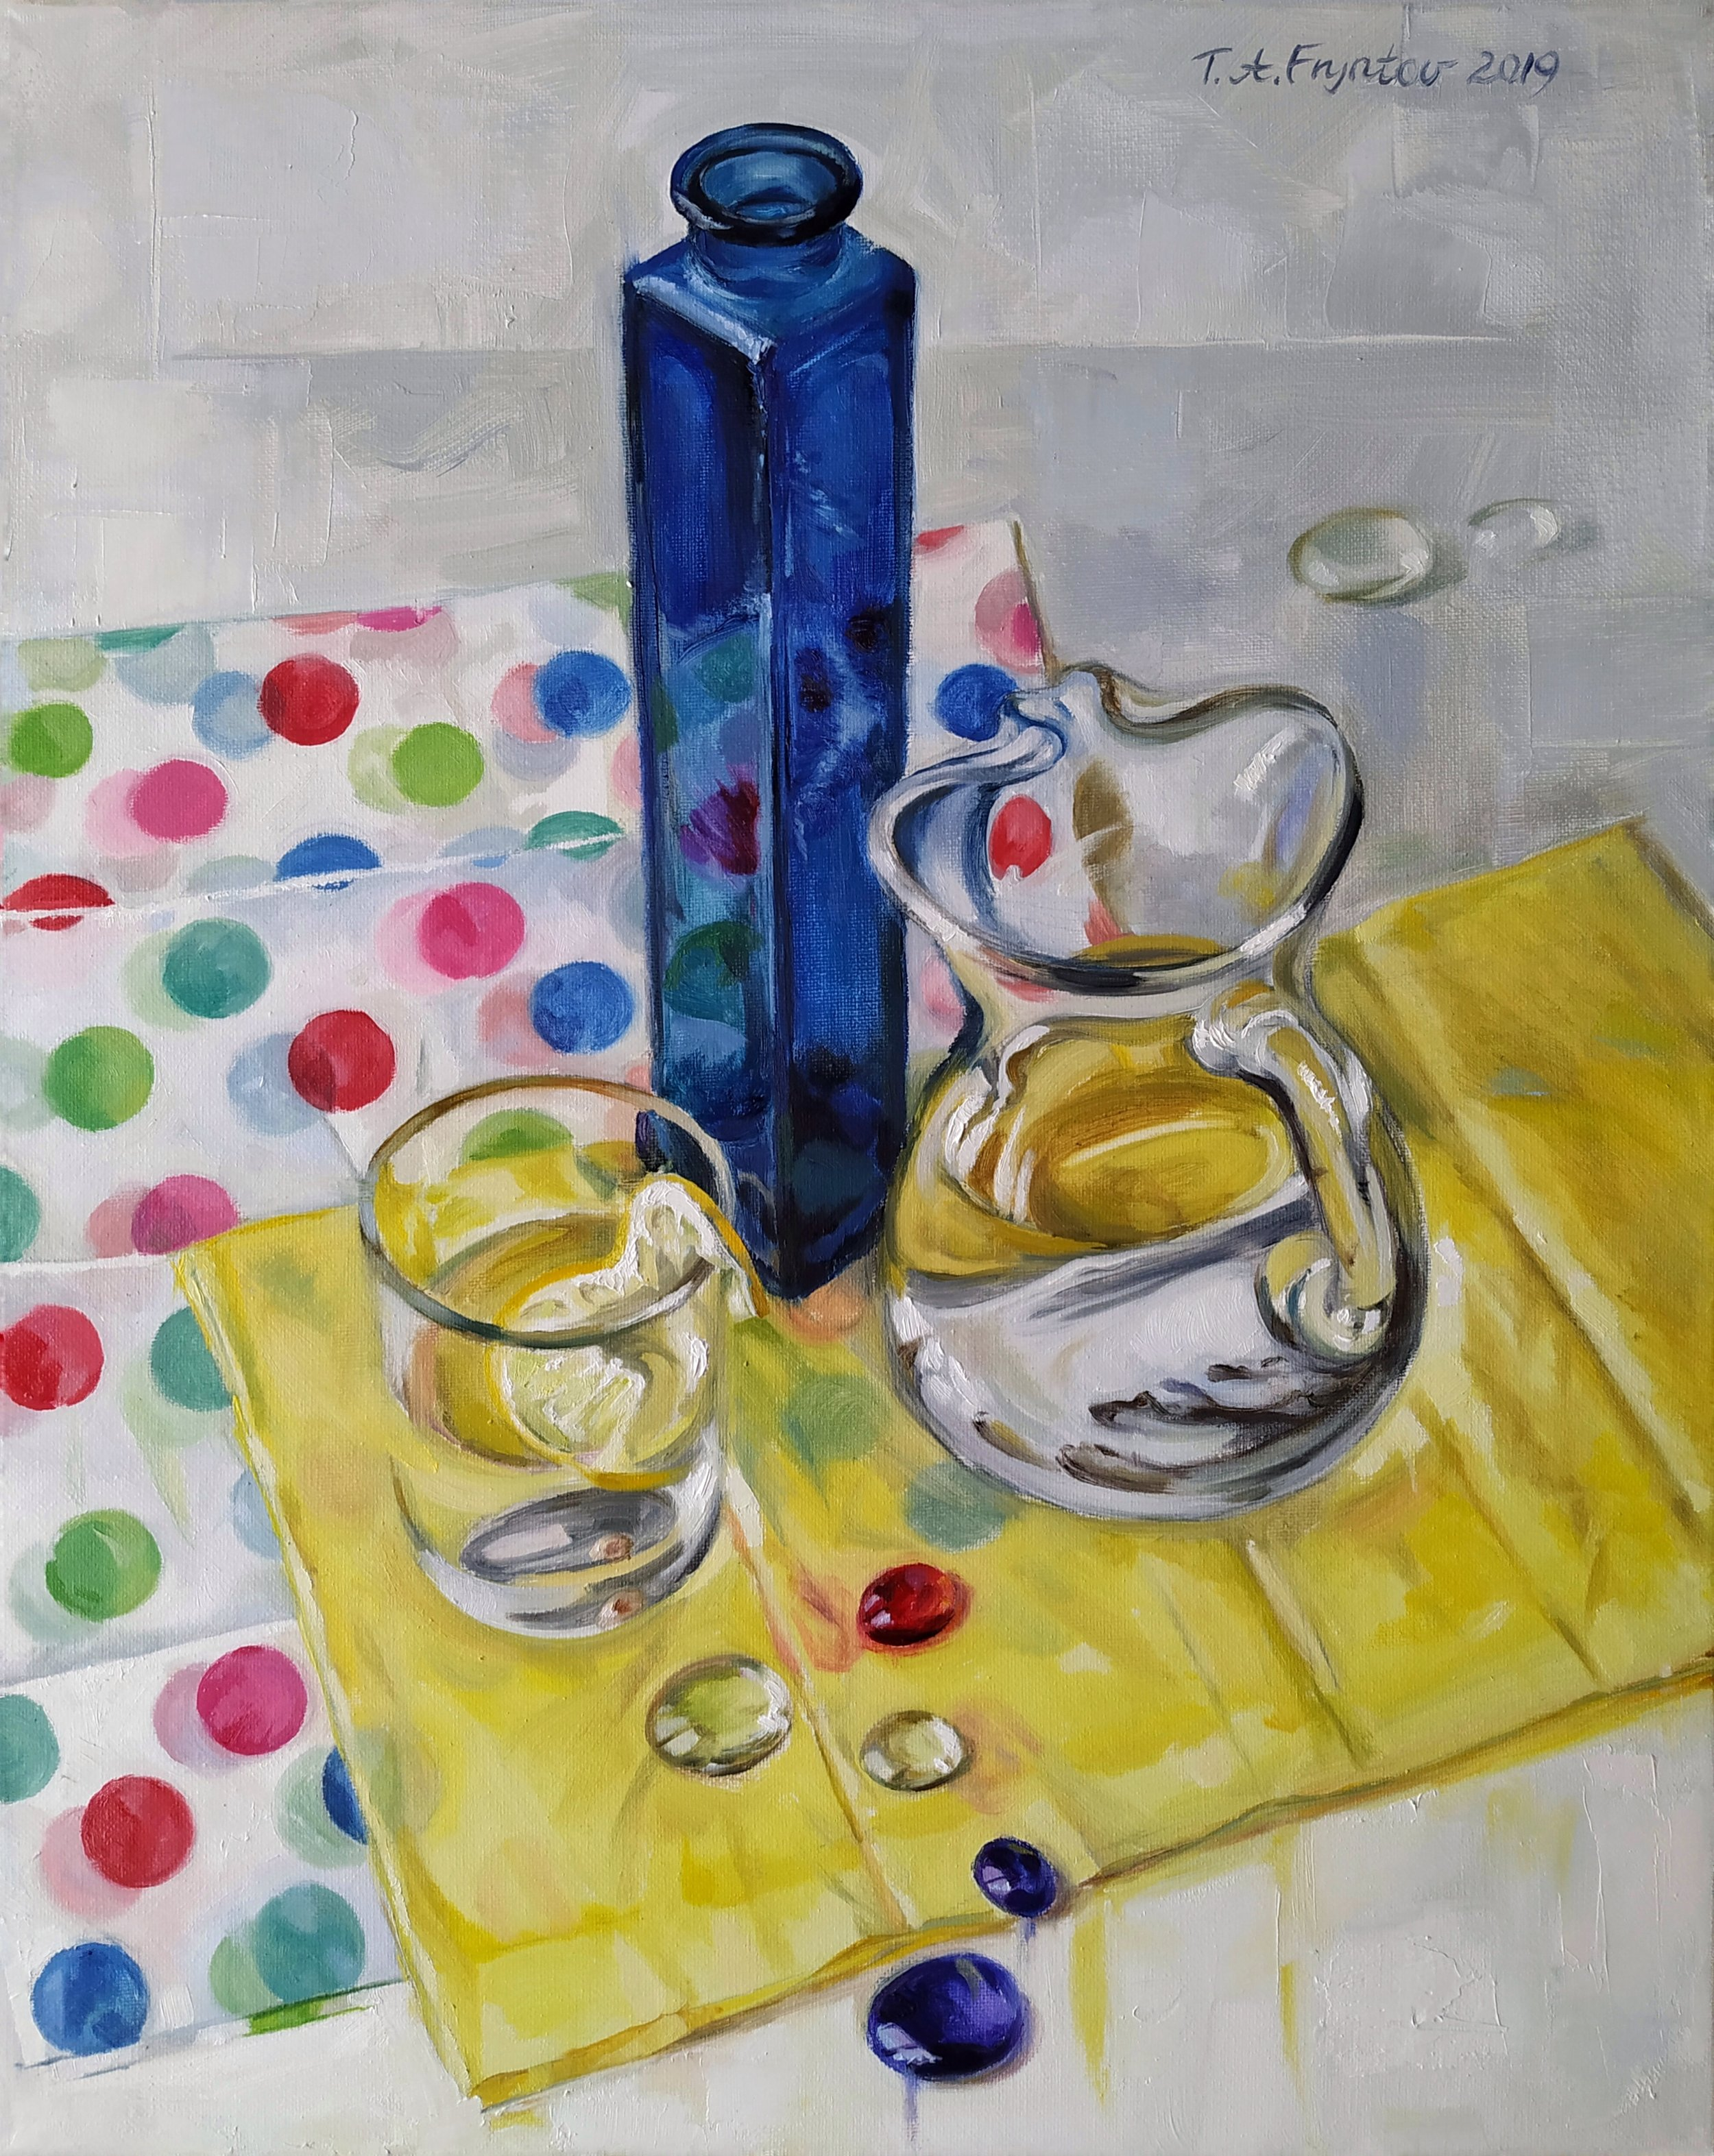 The Glass and the Polka Dots. 2019